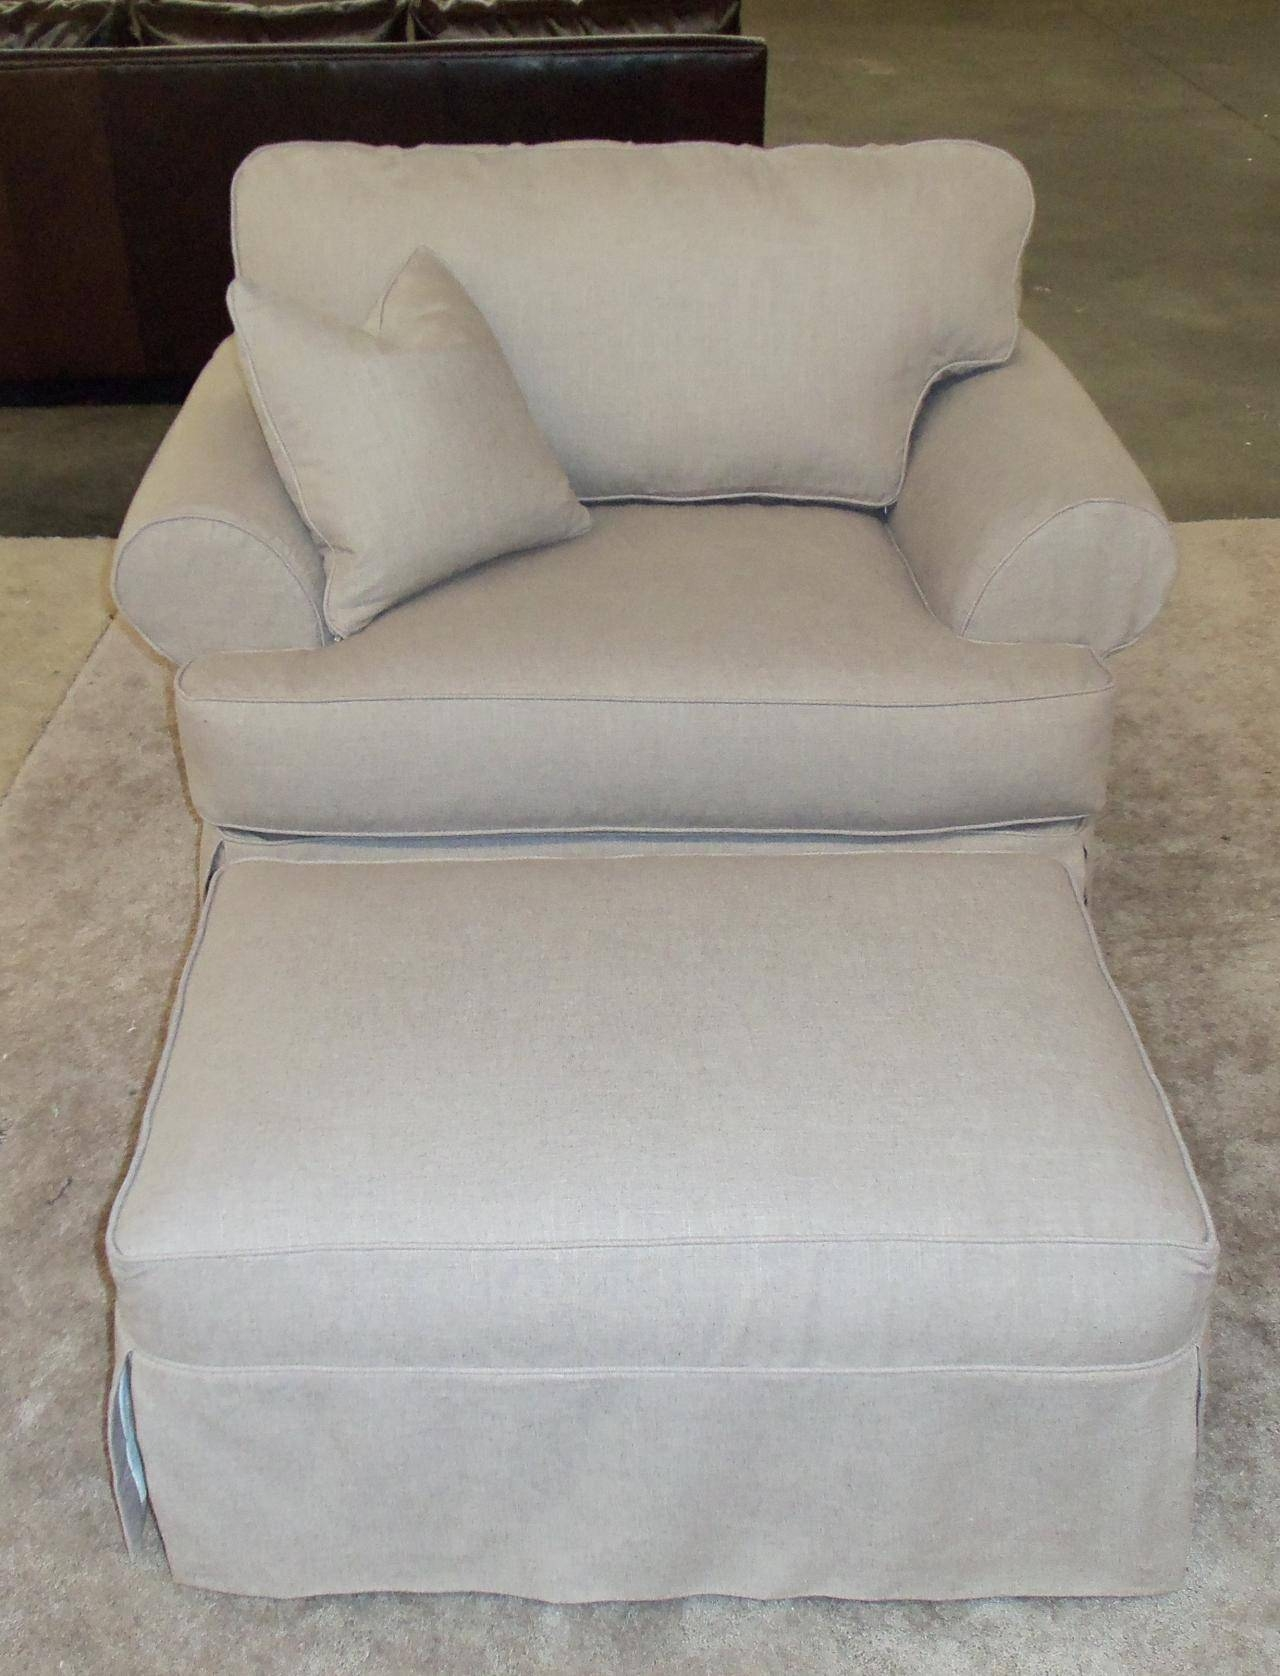 Large Chair Slipcovers T Cushion Slipcovers For Large Sofas Ottomans T Cushion